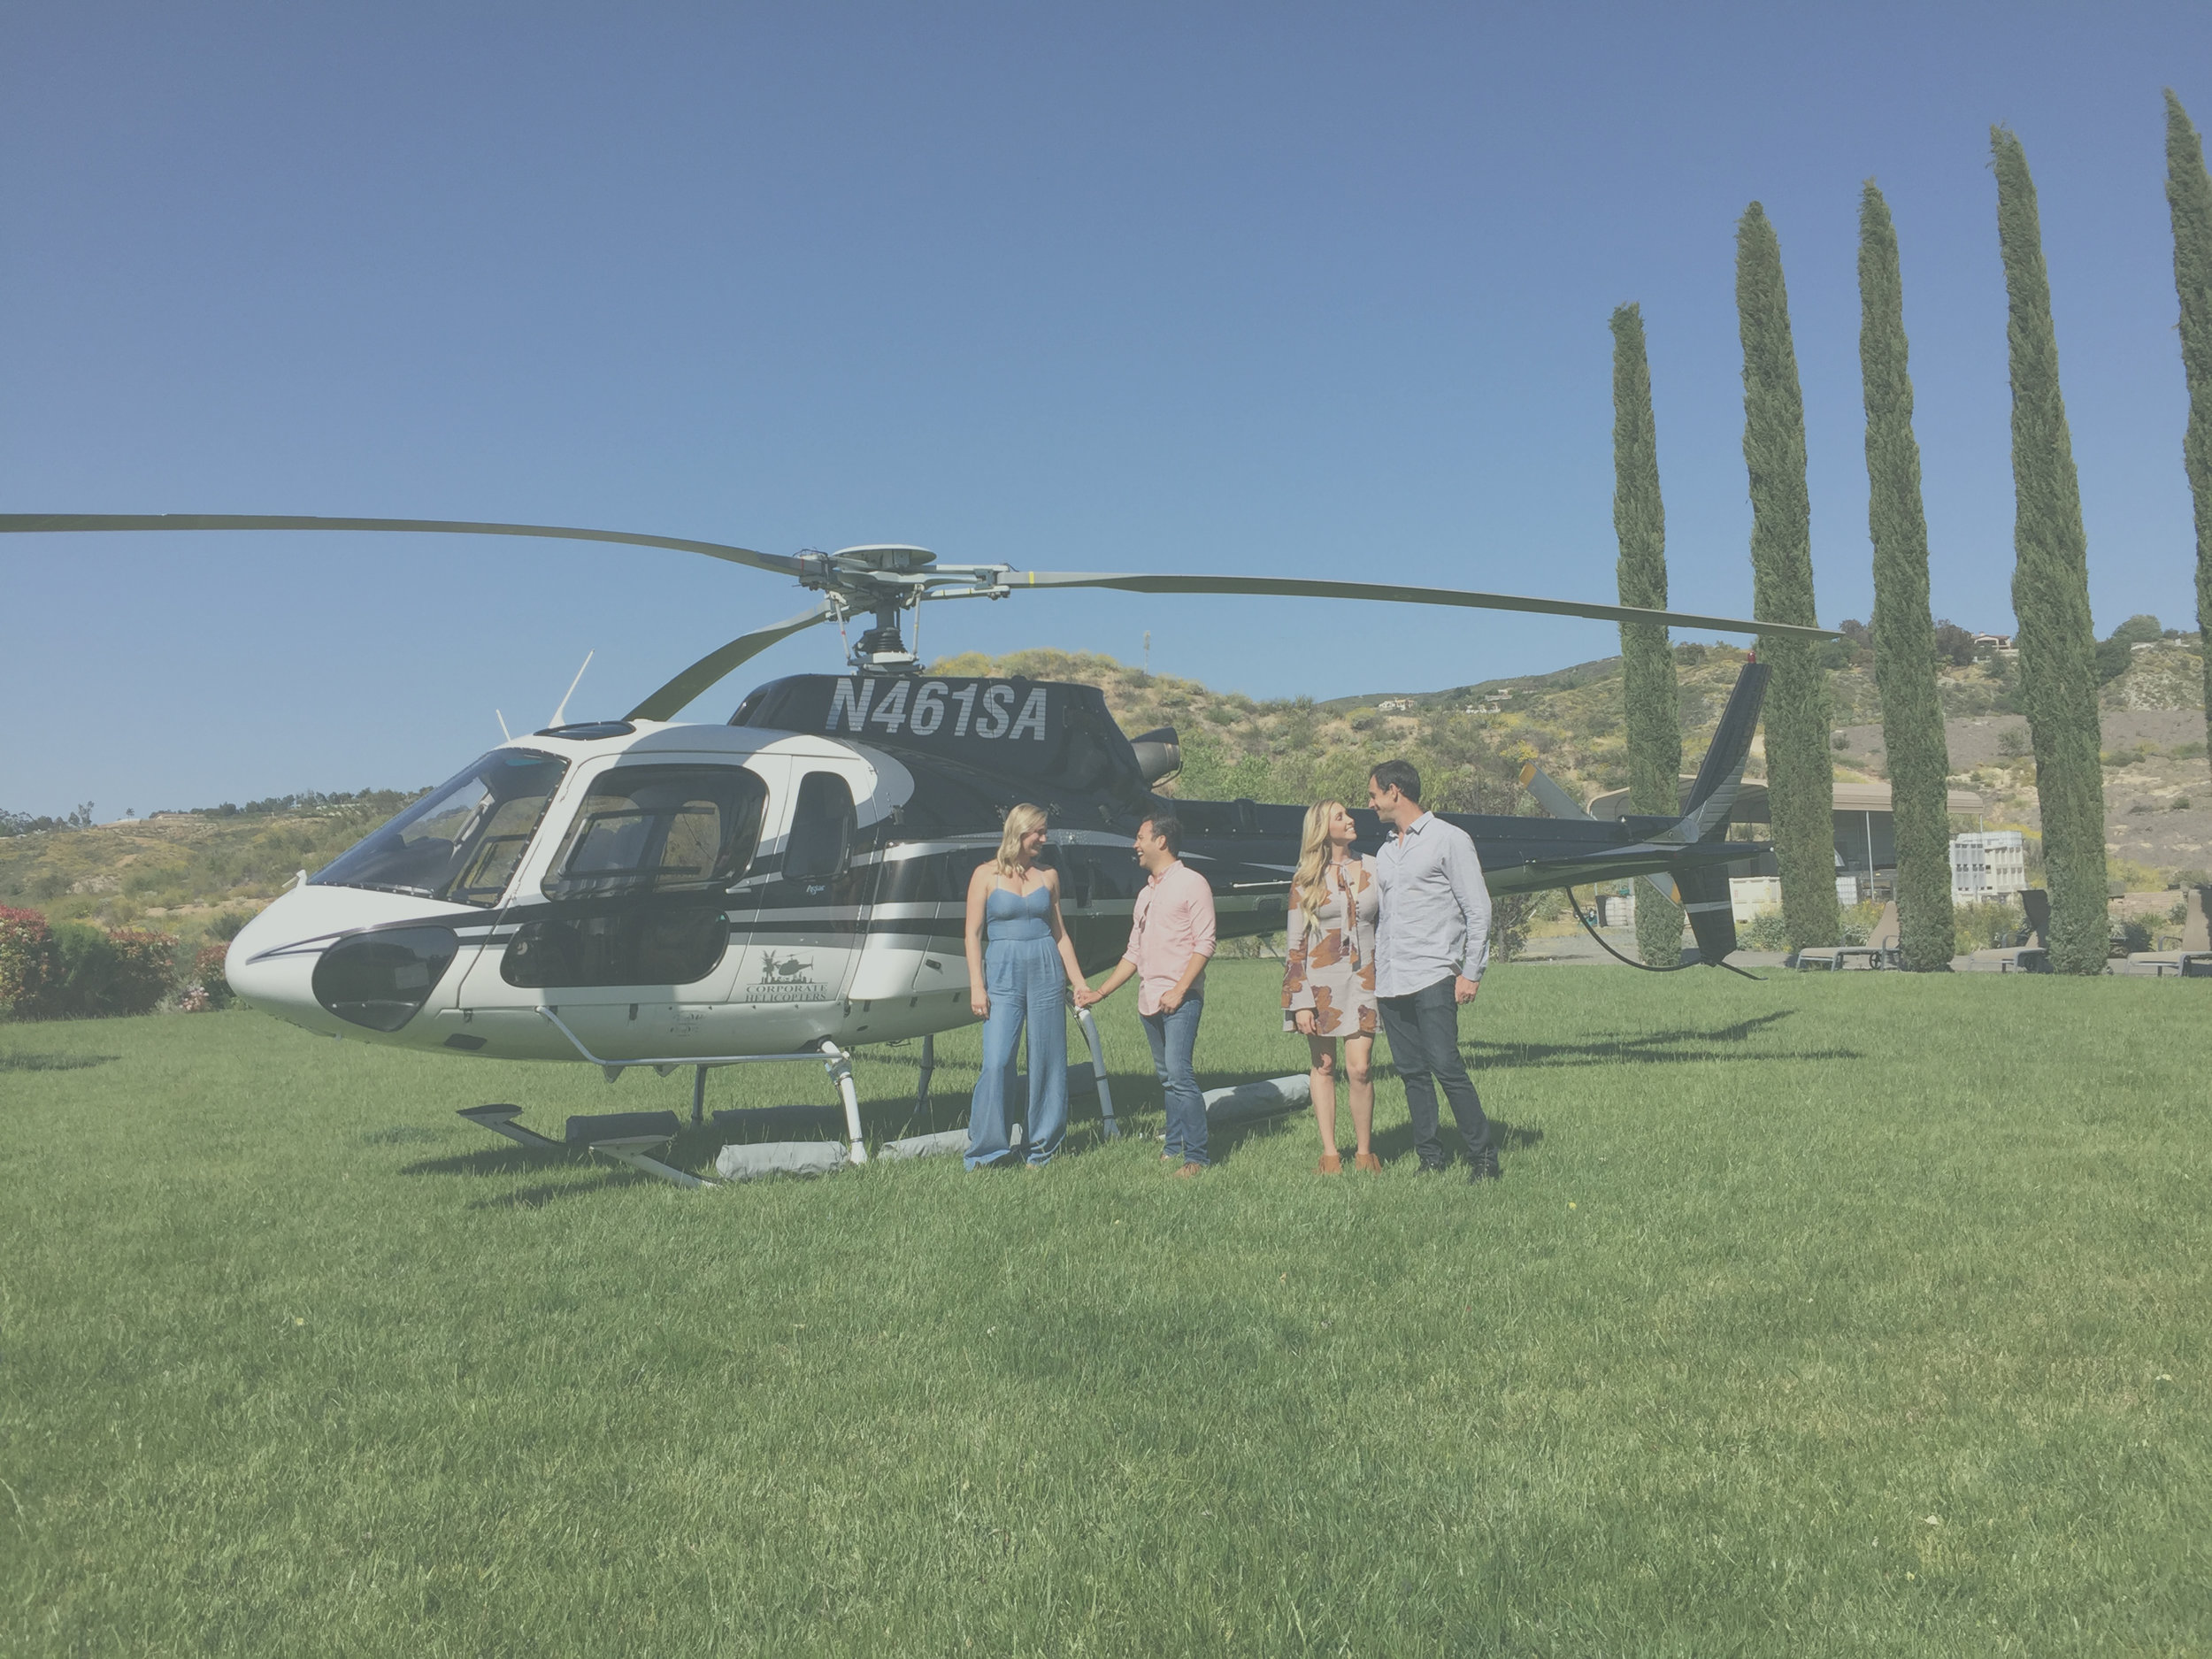 live like a local - February is the month for love & romance, so why not spice it up a bit! Local company, Corporate Helicopters is doing ocean view tours for discounted rates, and don't miss out on their fancy wine tours to Temecula. #loveisintheair